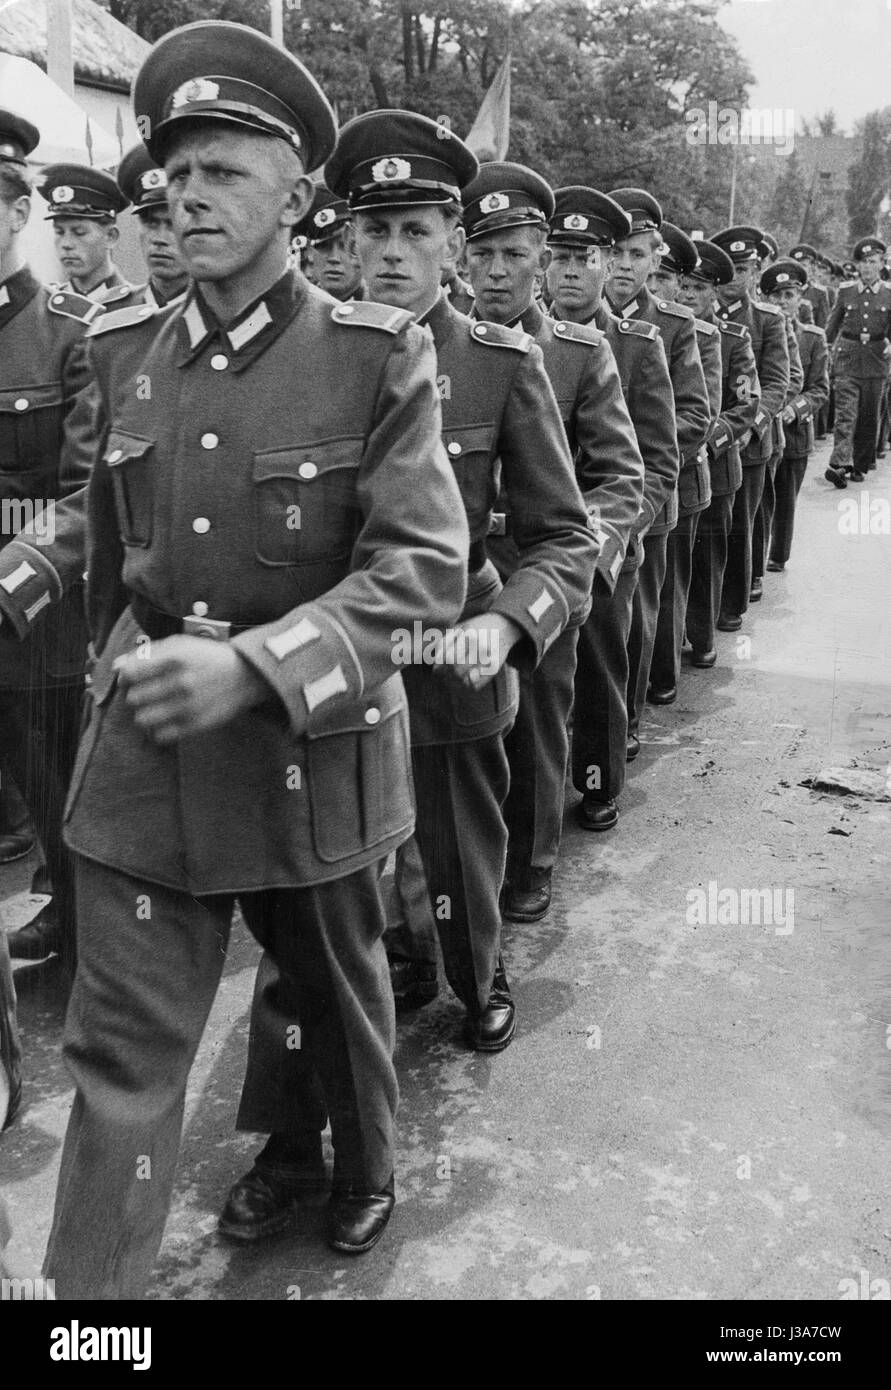 Soldiers of the National People's Army - Stock Image